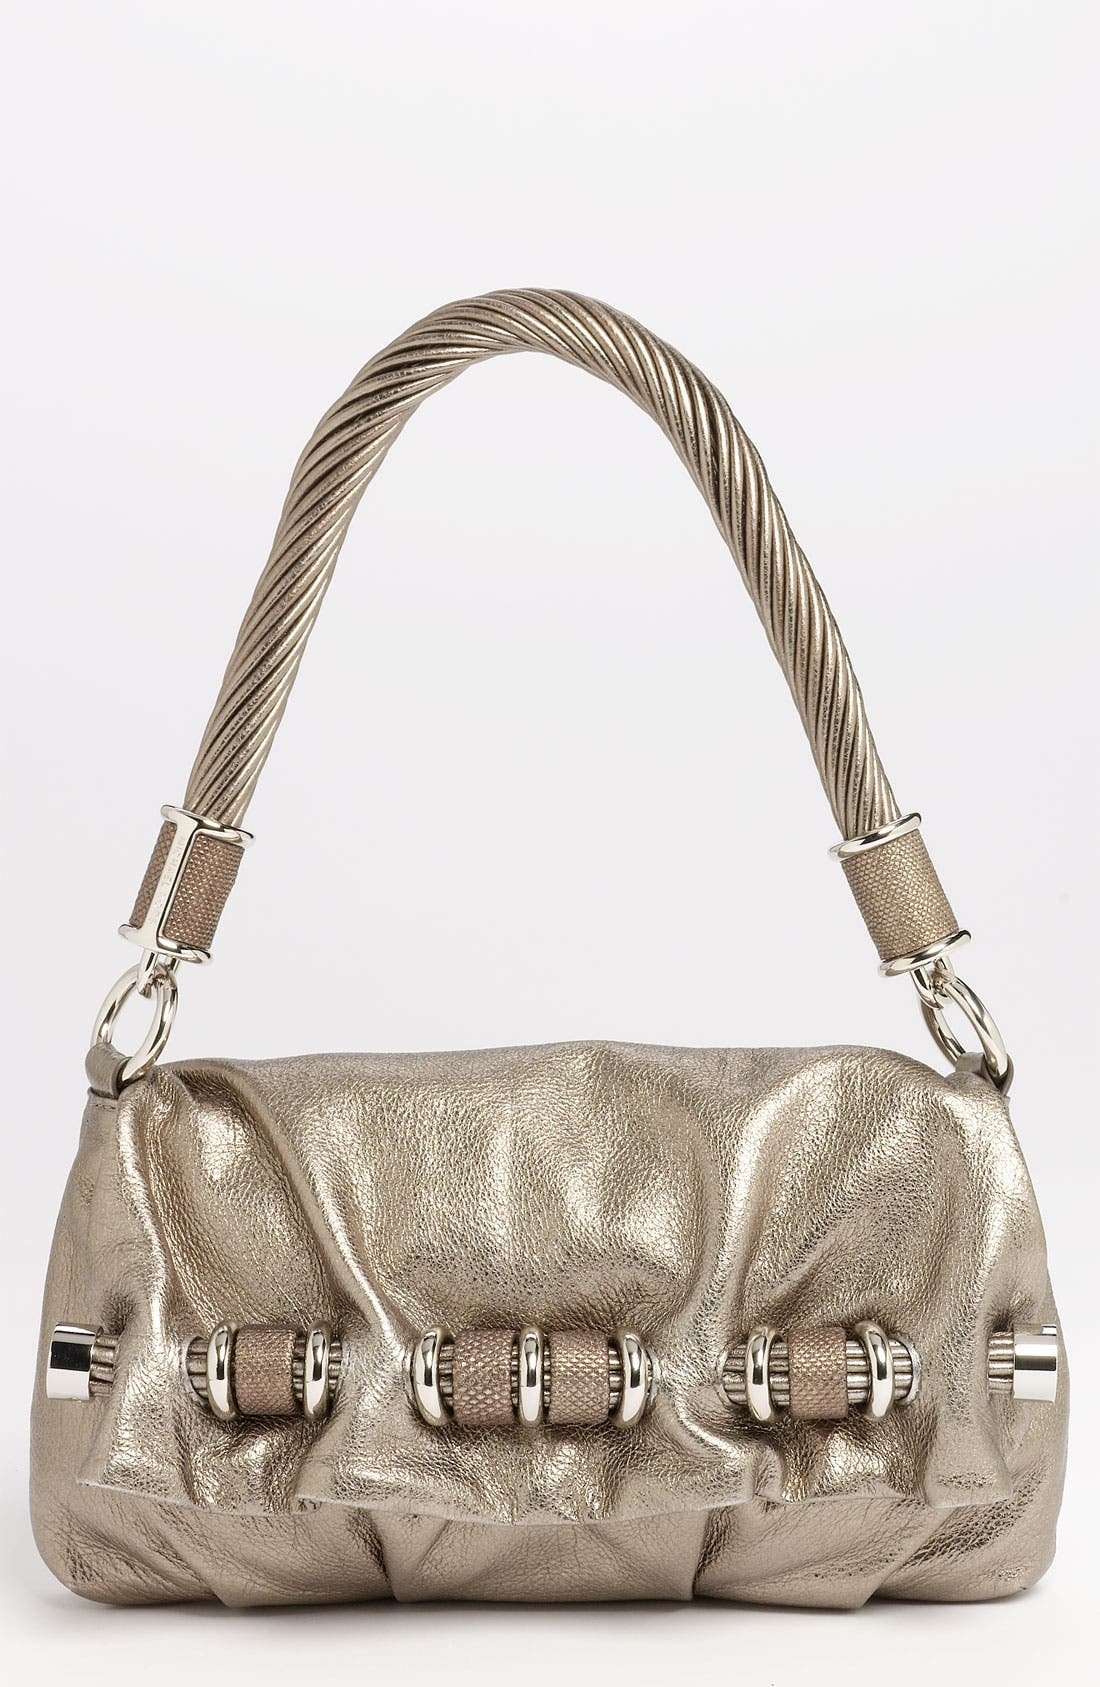 Alternate Image 1 Selected - Michael Kors 'Tonne' Leather Shoulder Bag